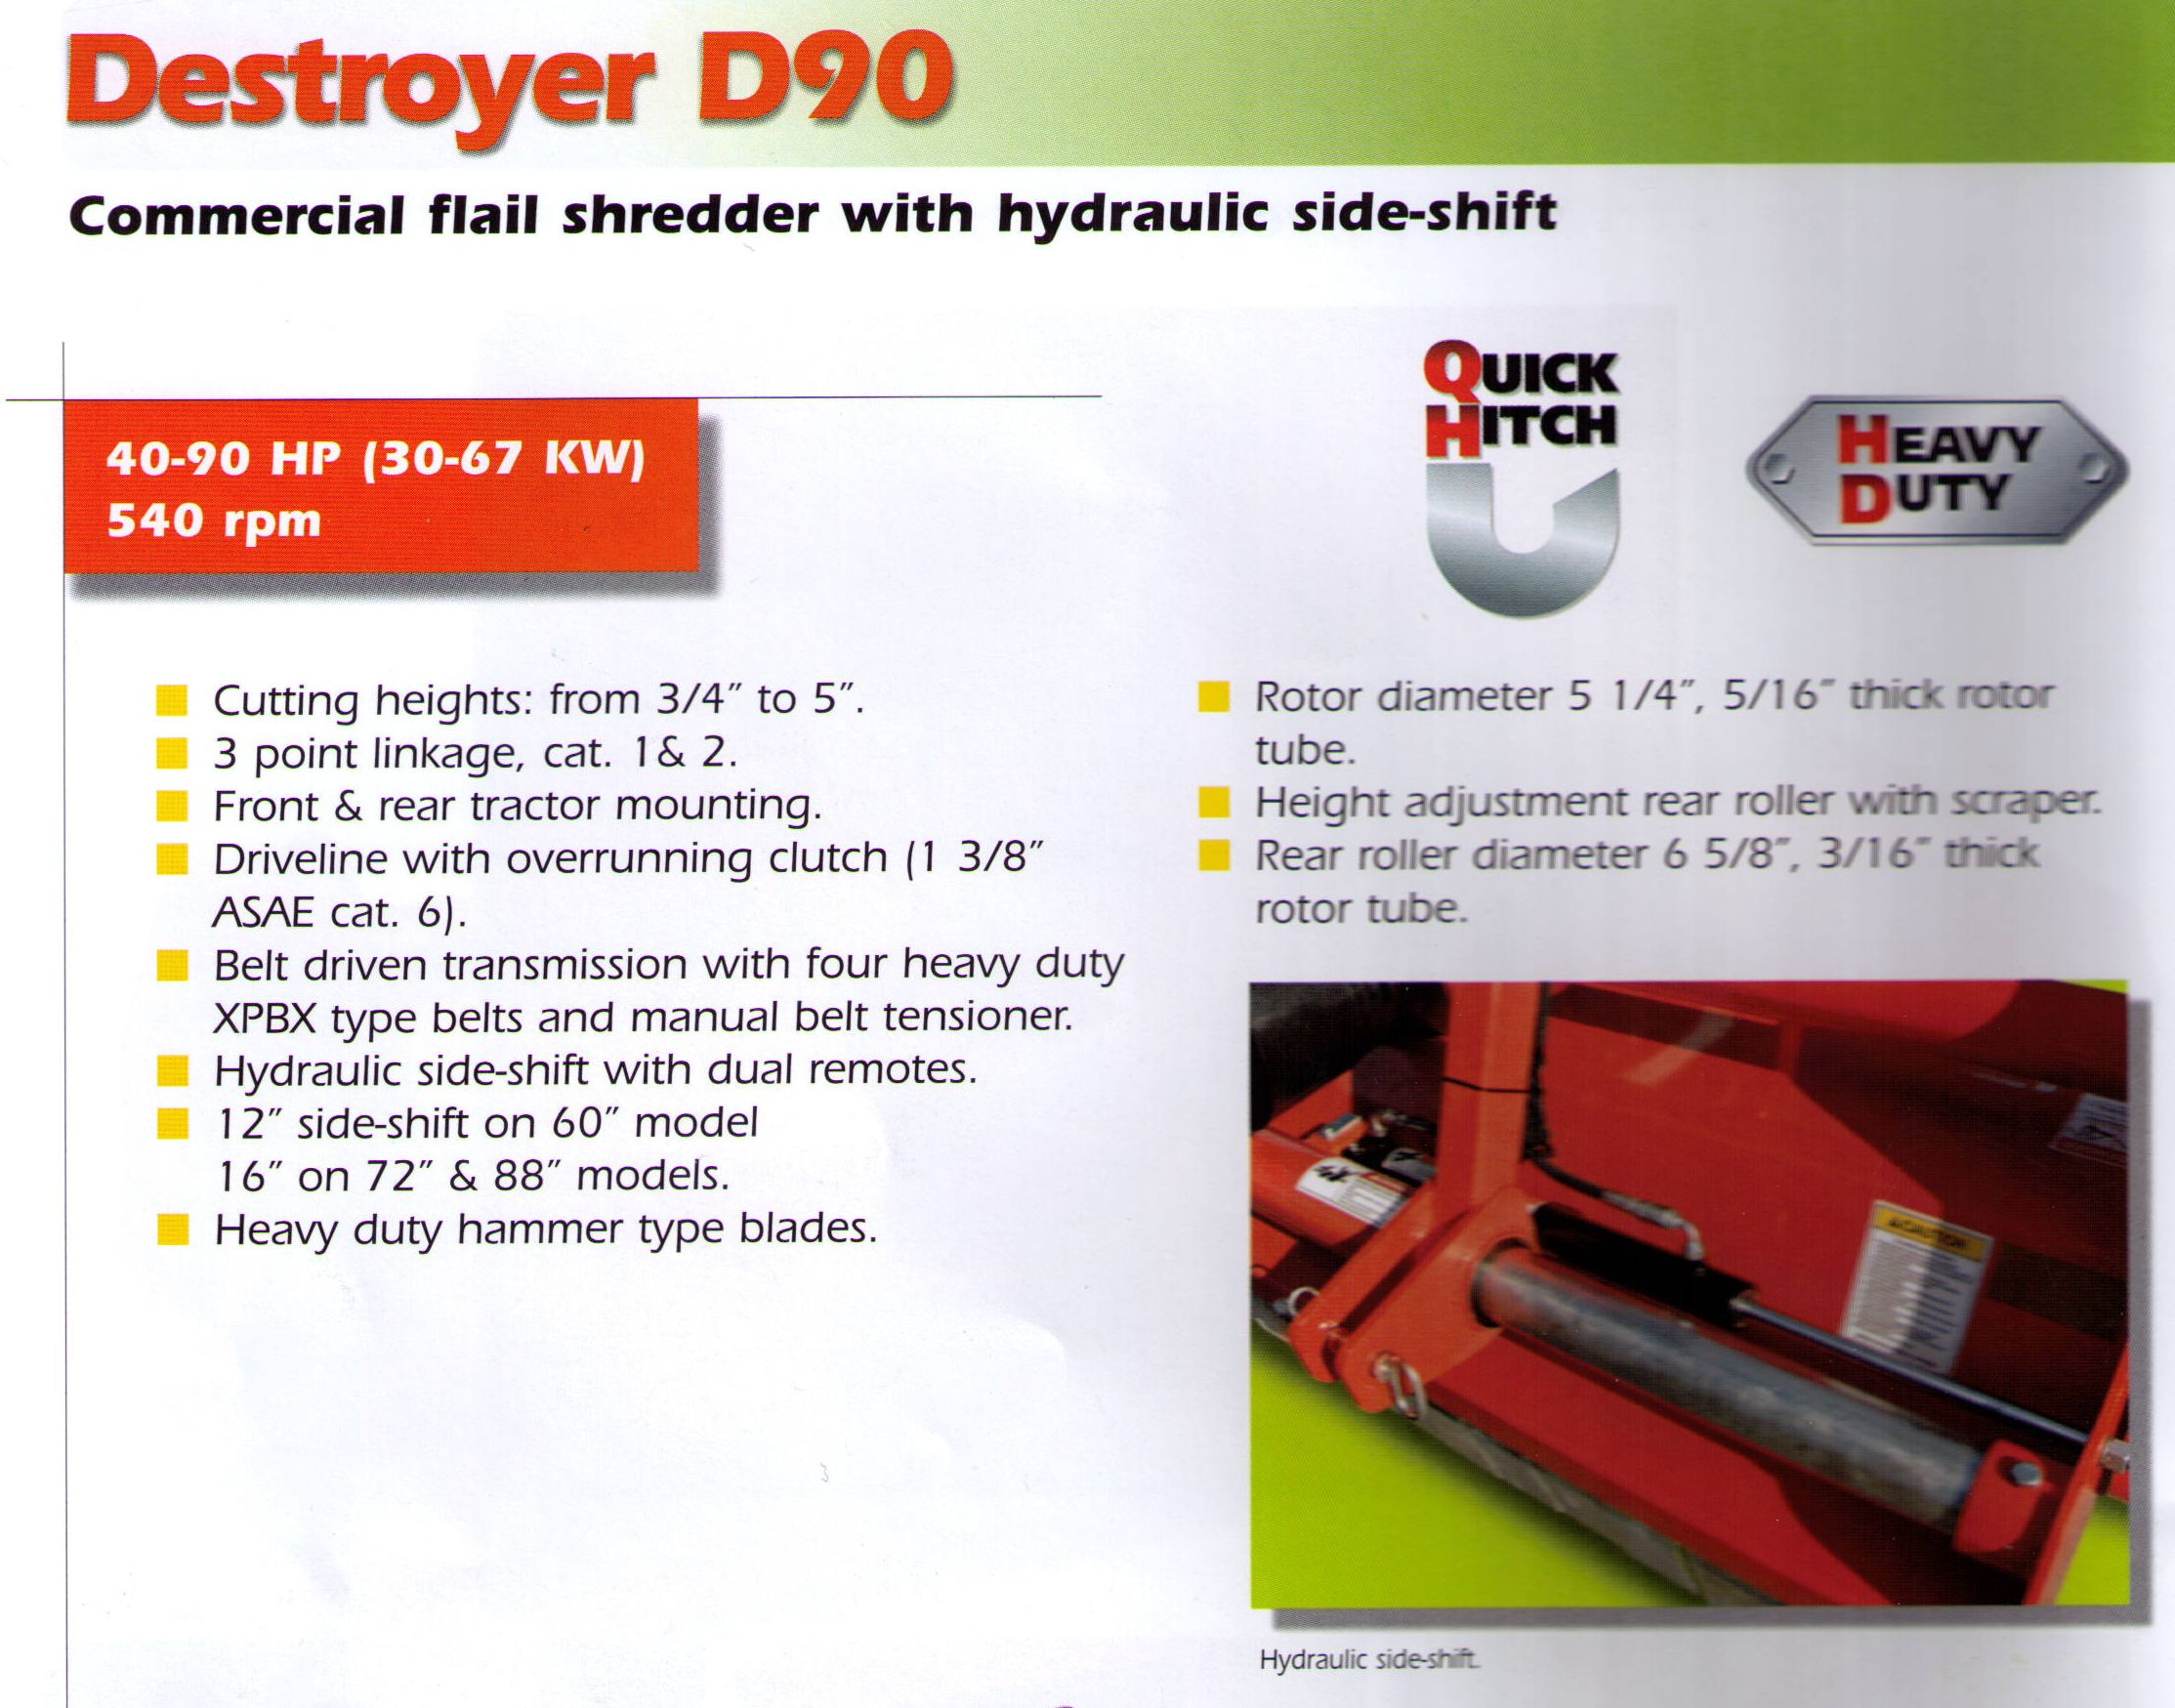 Specifications Befco Destroyer D90 Commercial Flail Stredder With Hydraulic Side Shift